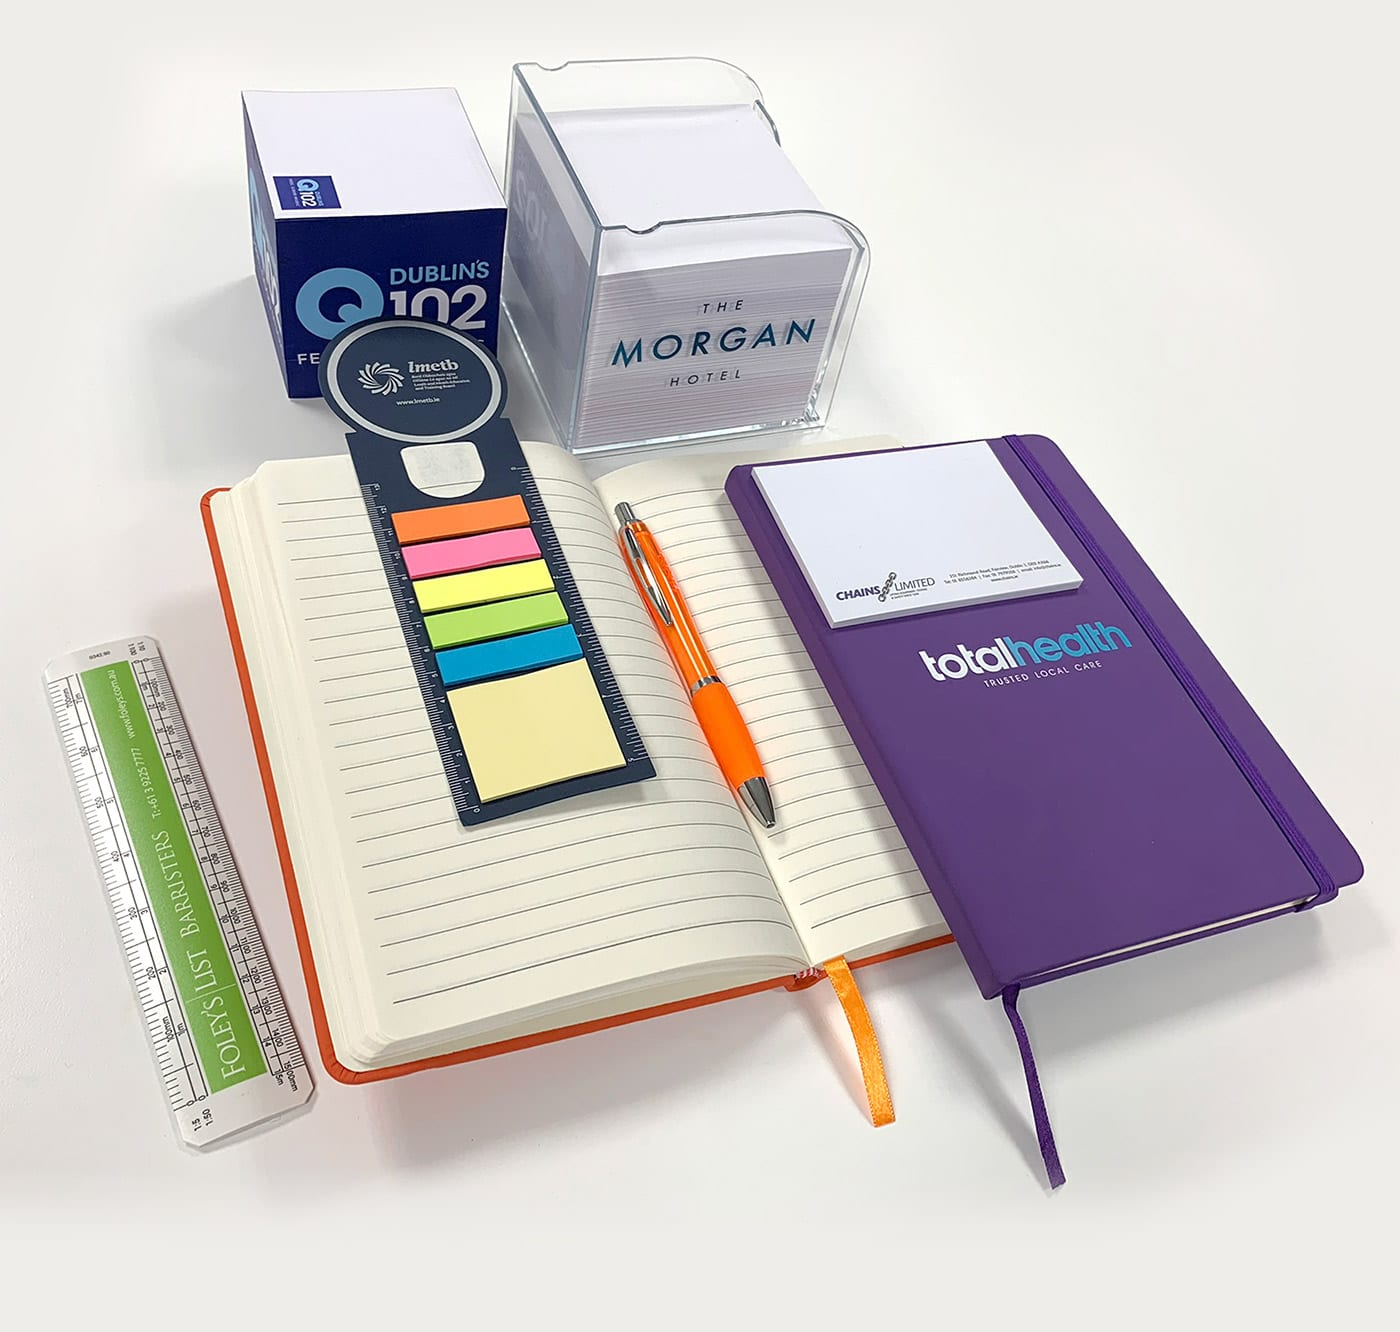 Promotional Notebooks, Note pads and pens